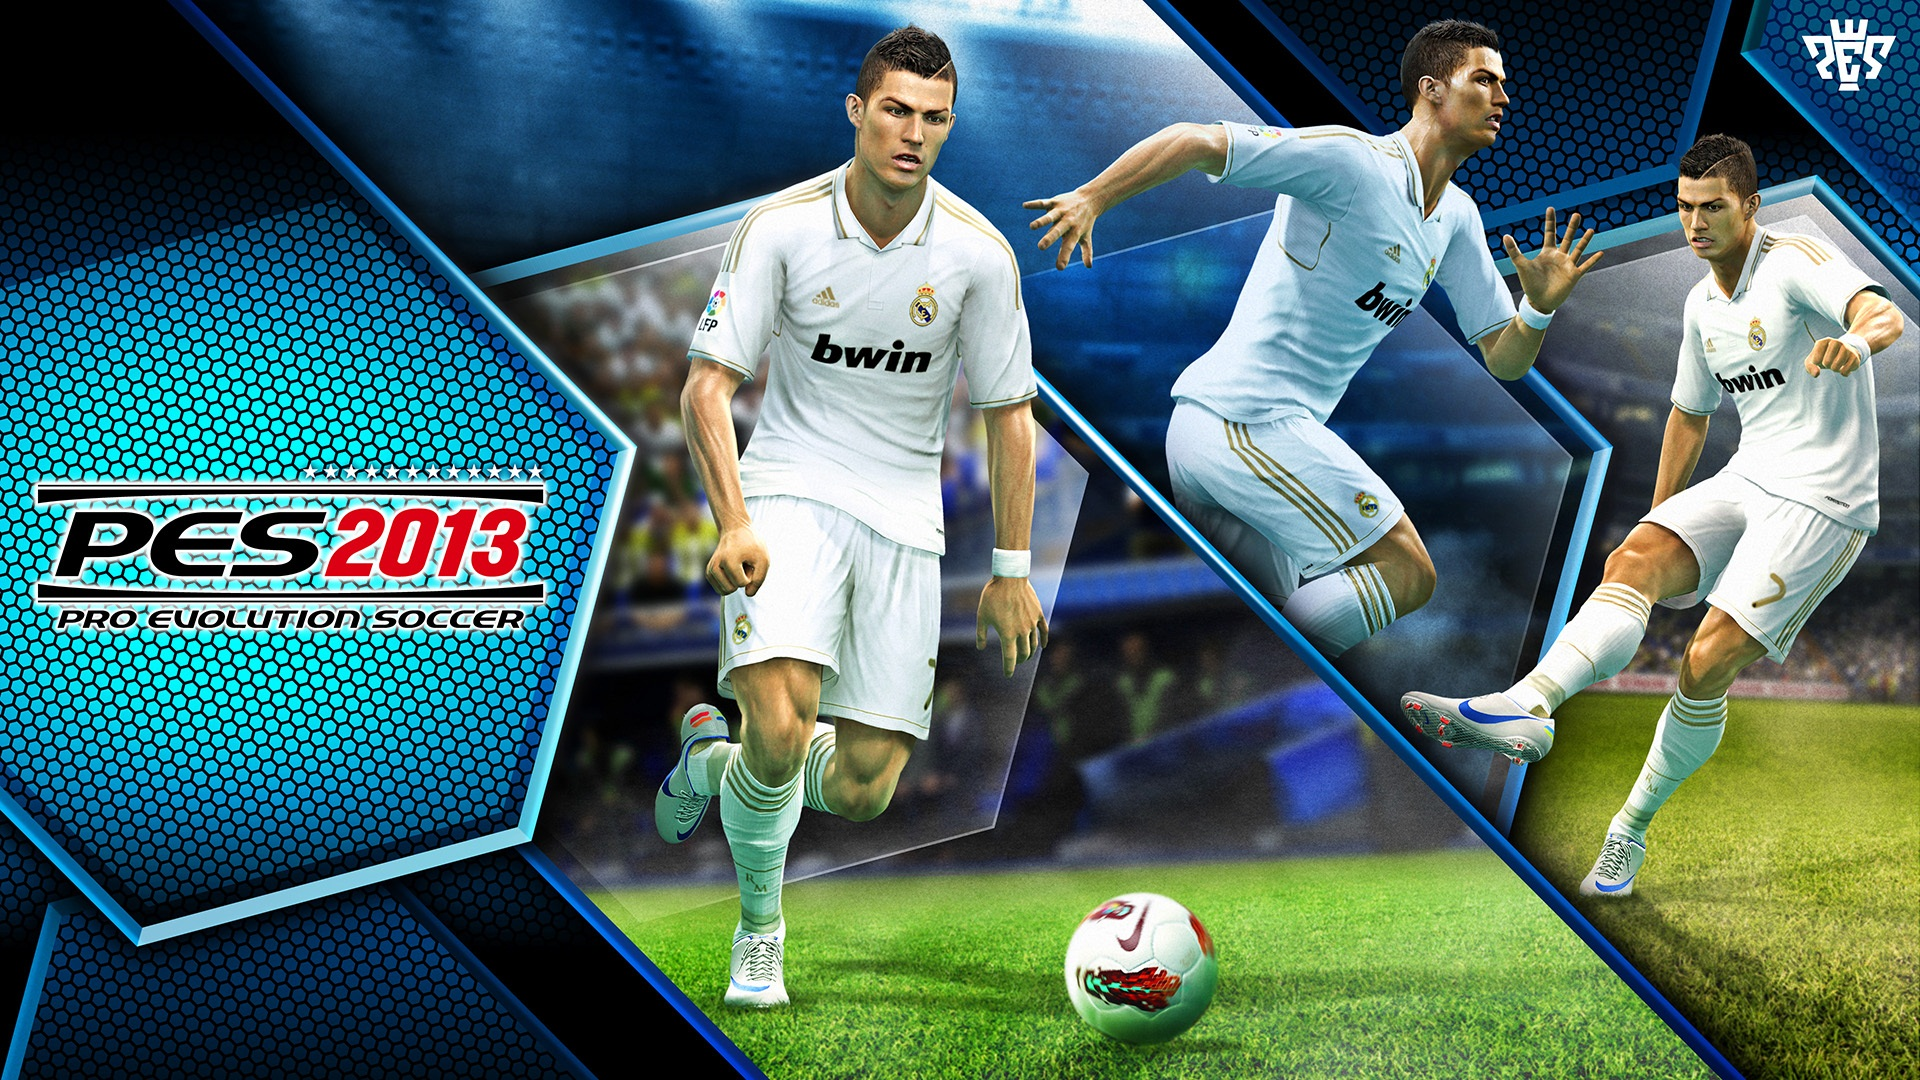 pes 2013 turkish commentary